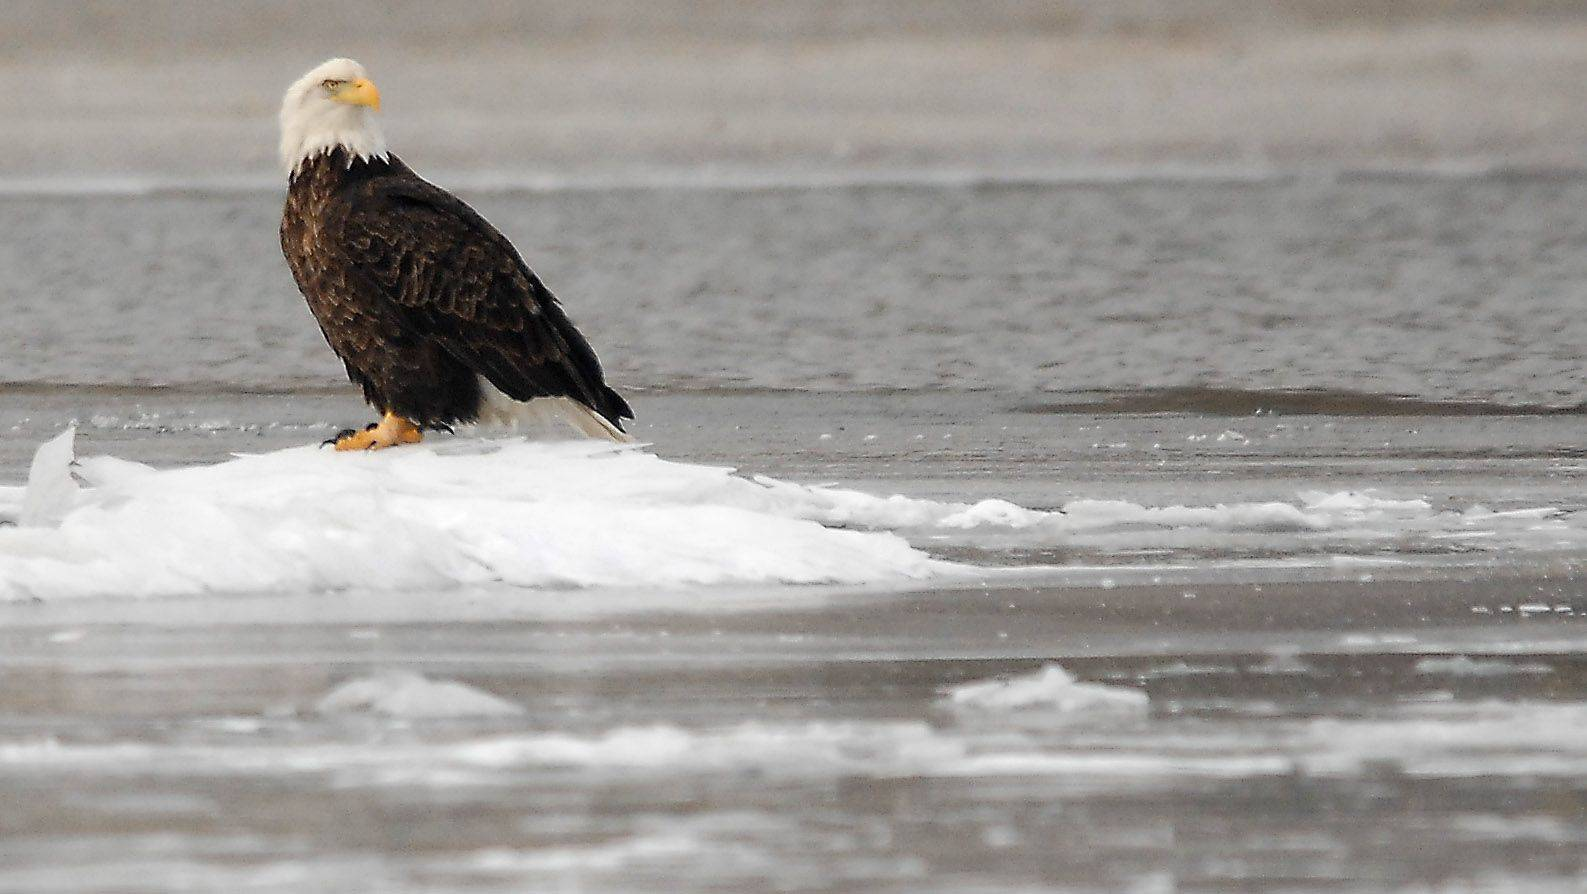 The majestic bald eagles have been seen all along the Fox River in Elgin during recent days.